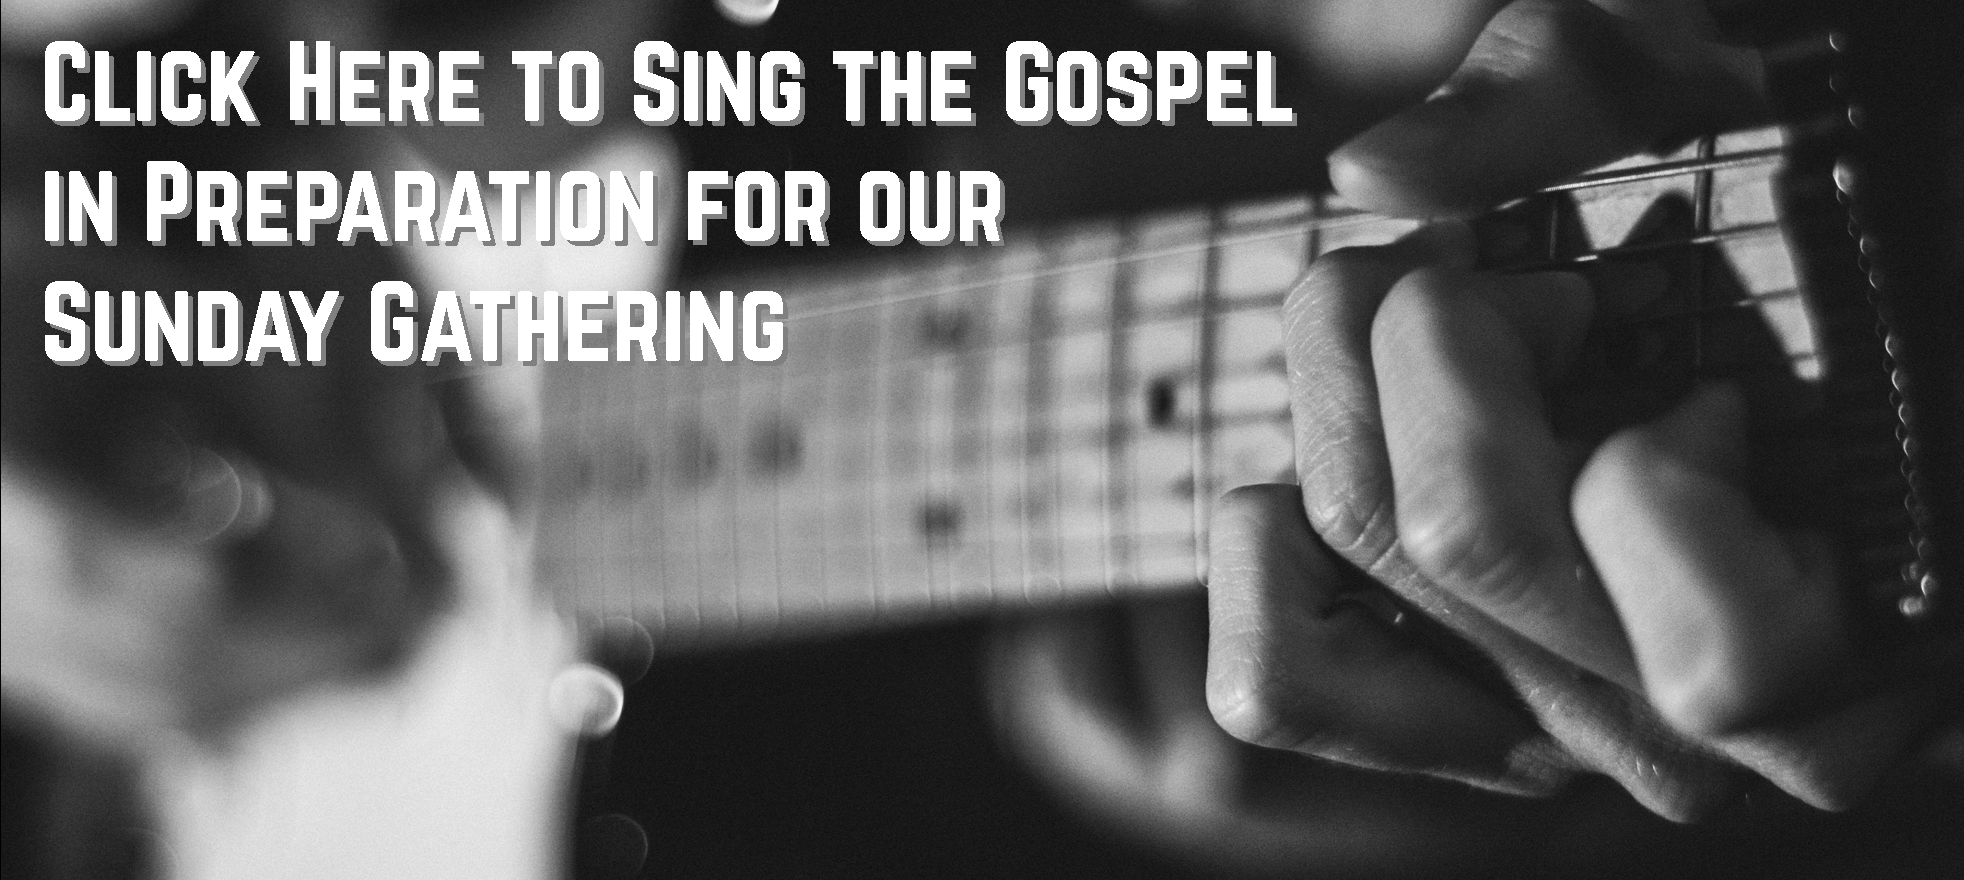 Sing the Gospel